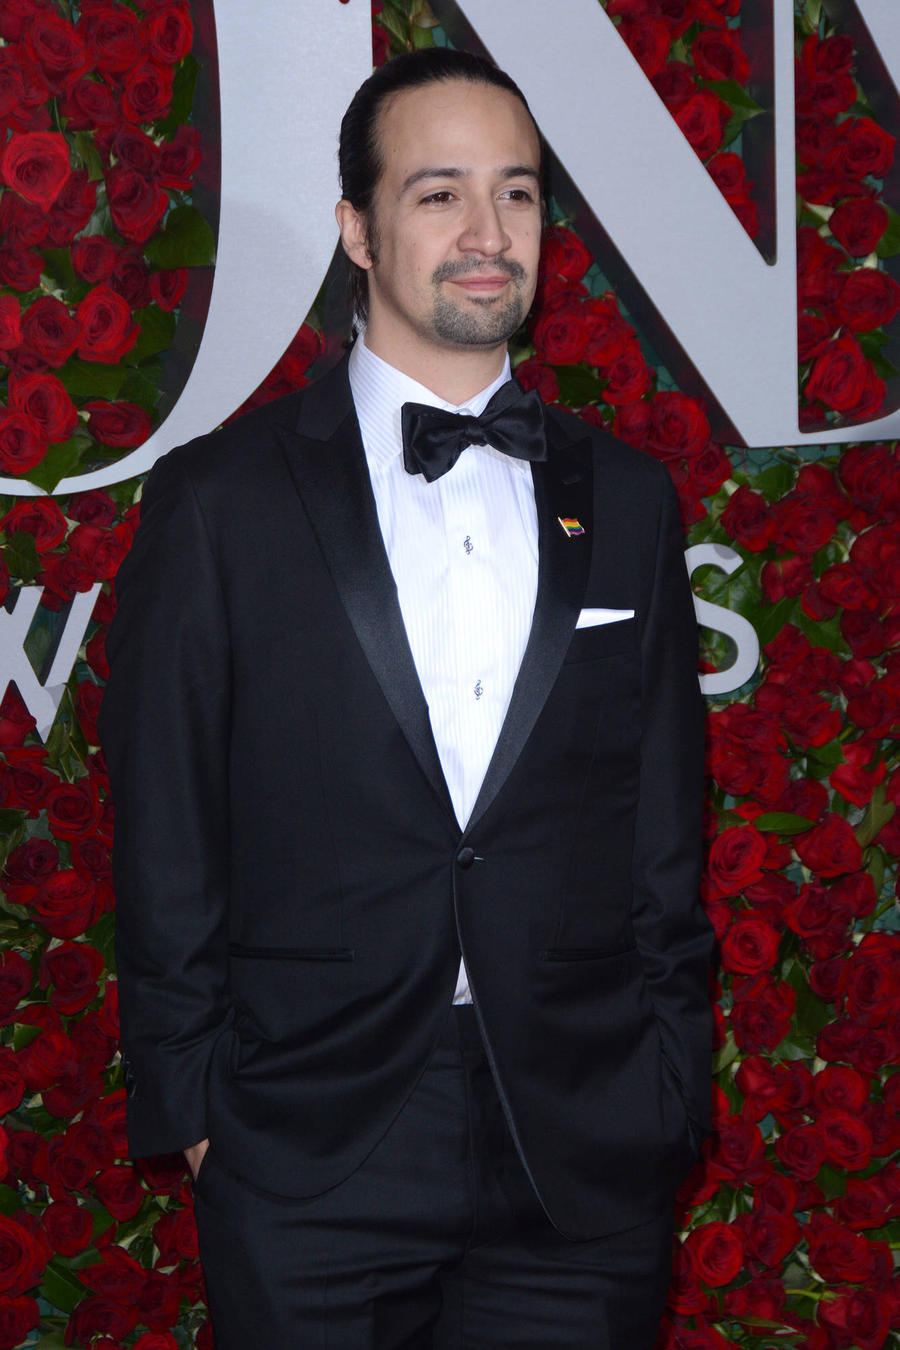 Lin-manuel Miranda Planning To Return To Hamilton